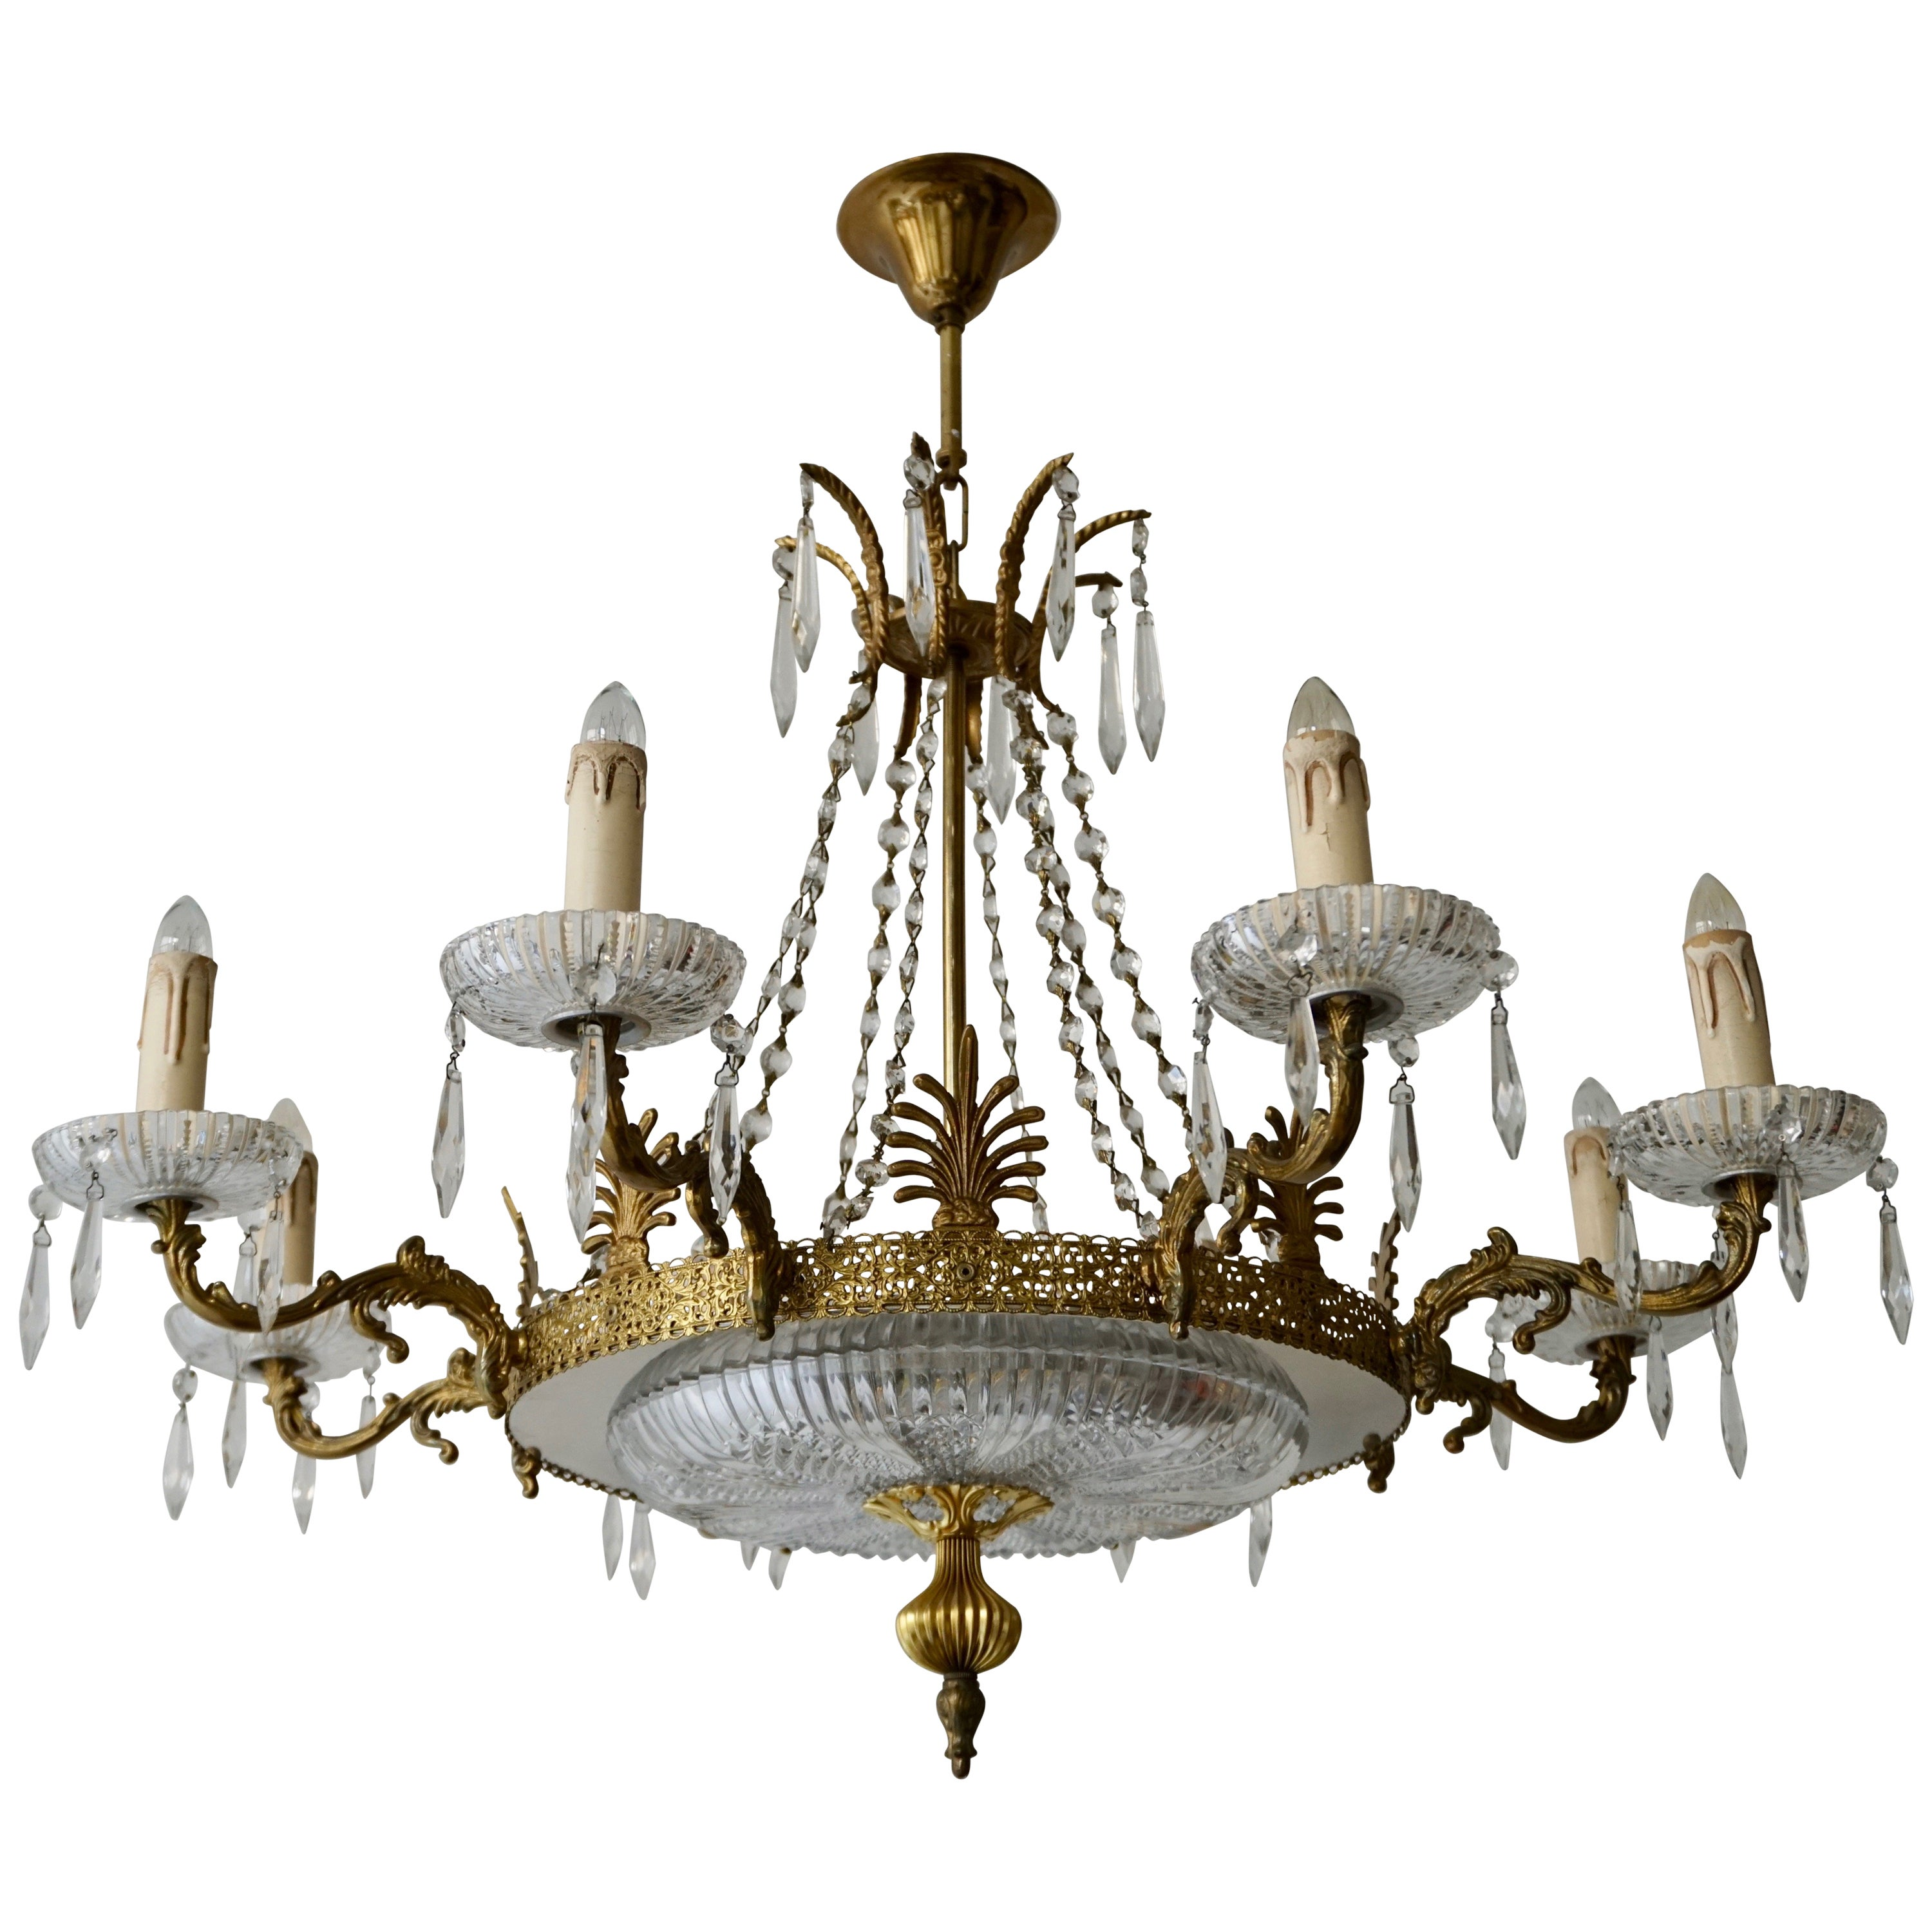 Midcentury Italian Murano Glass and Gilt Brass Chandelier, Pair